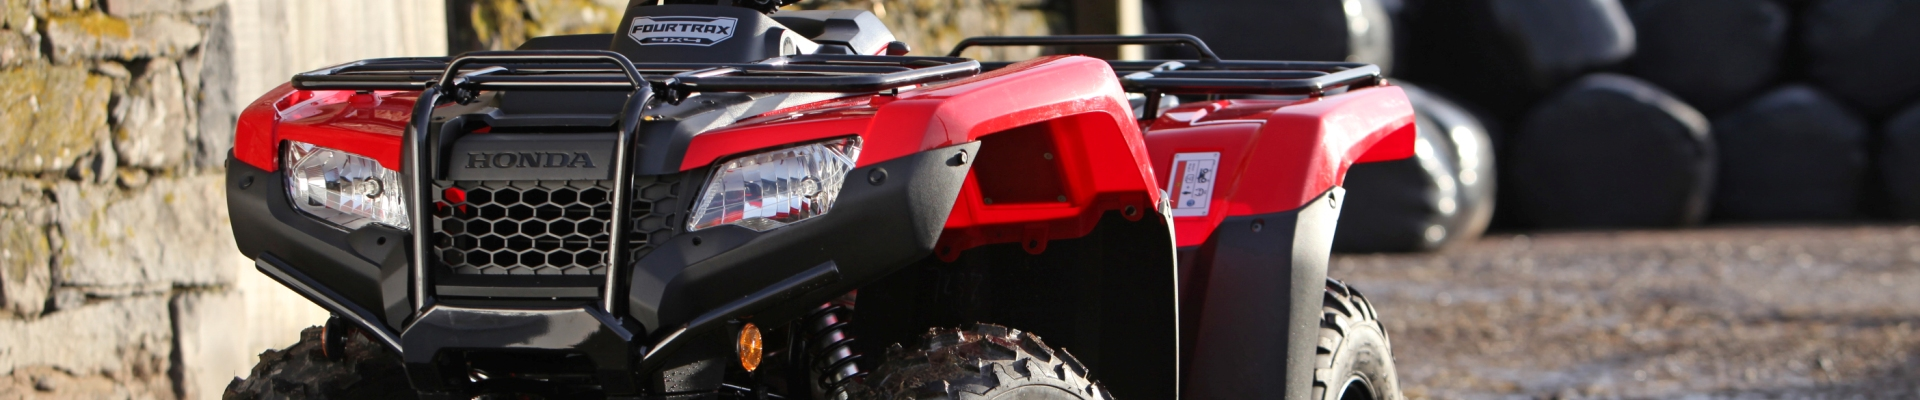 honda-atv-slider-3